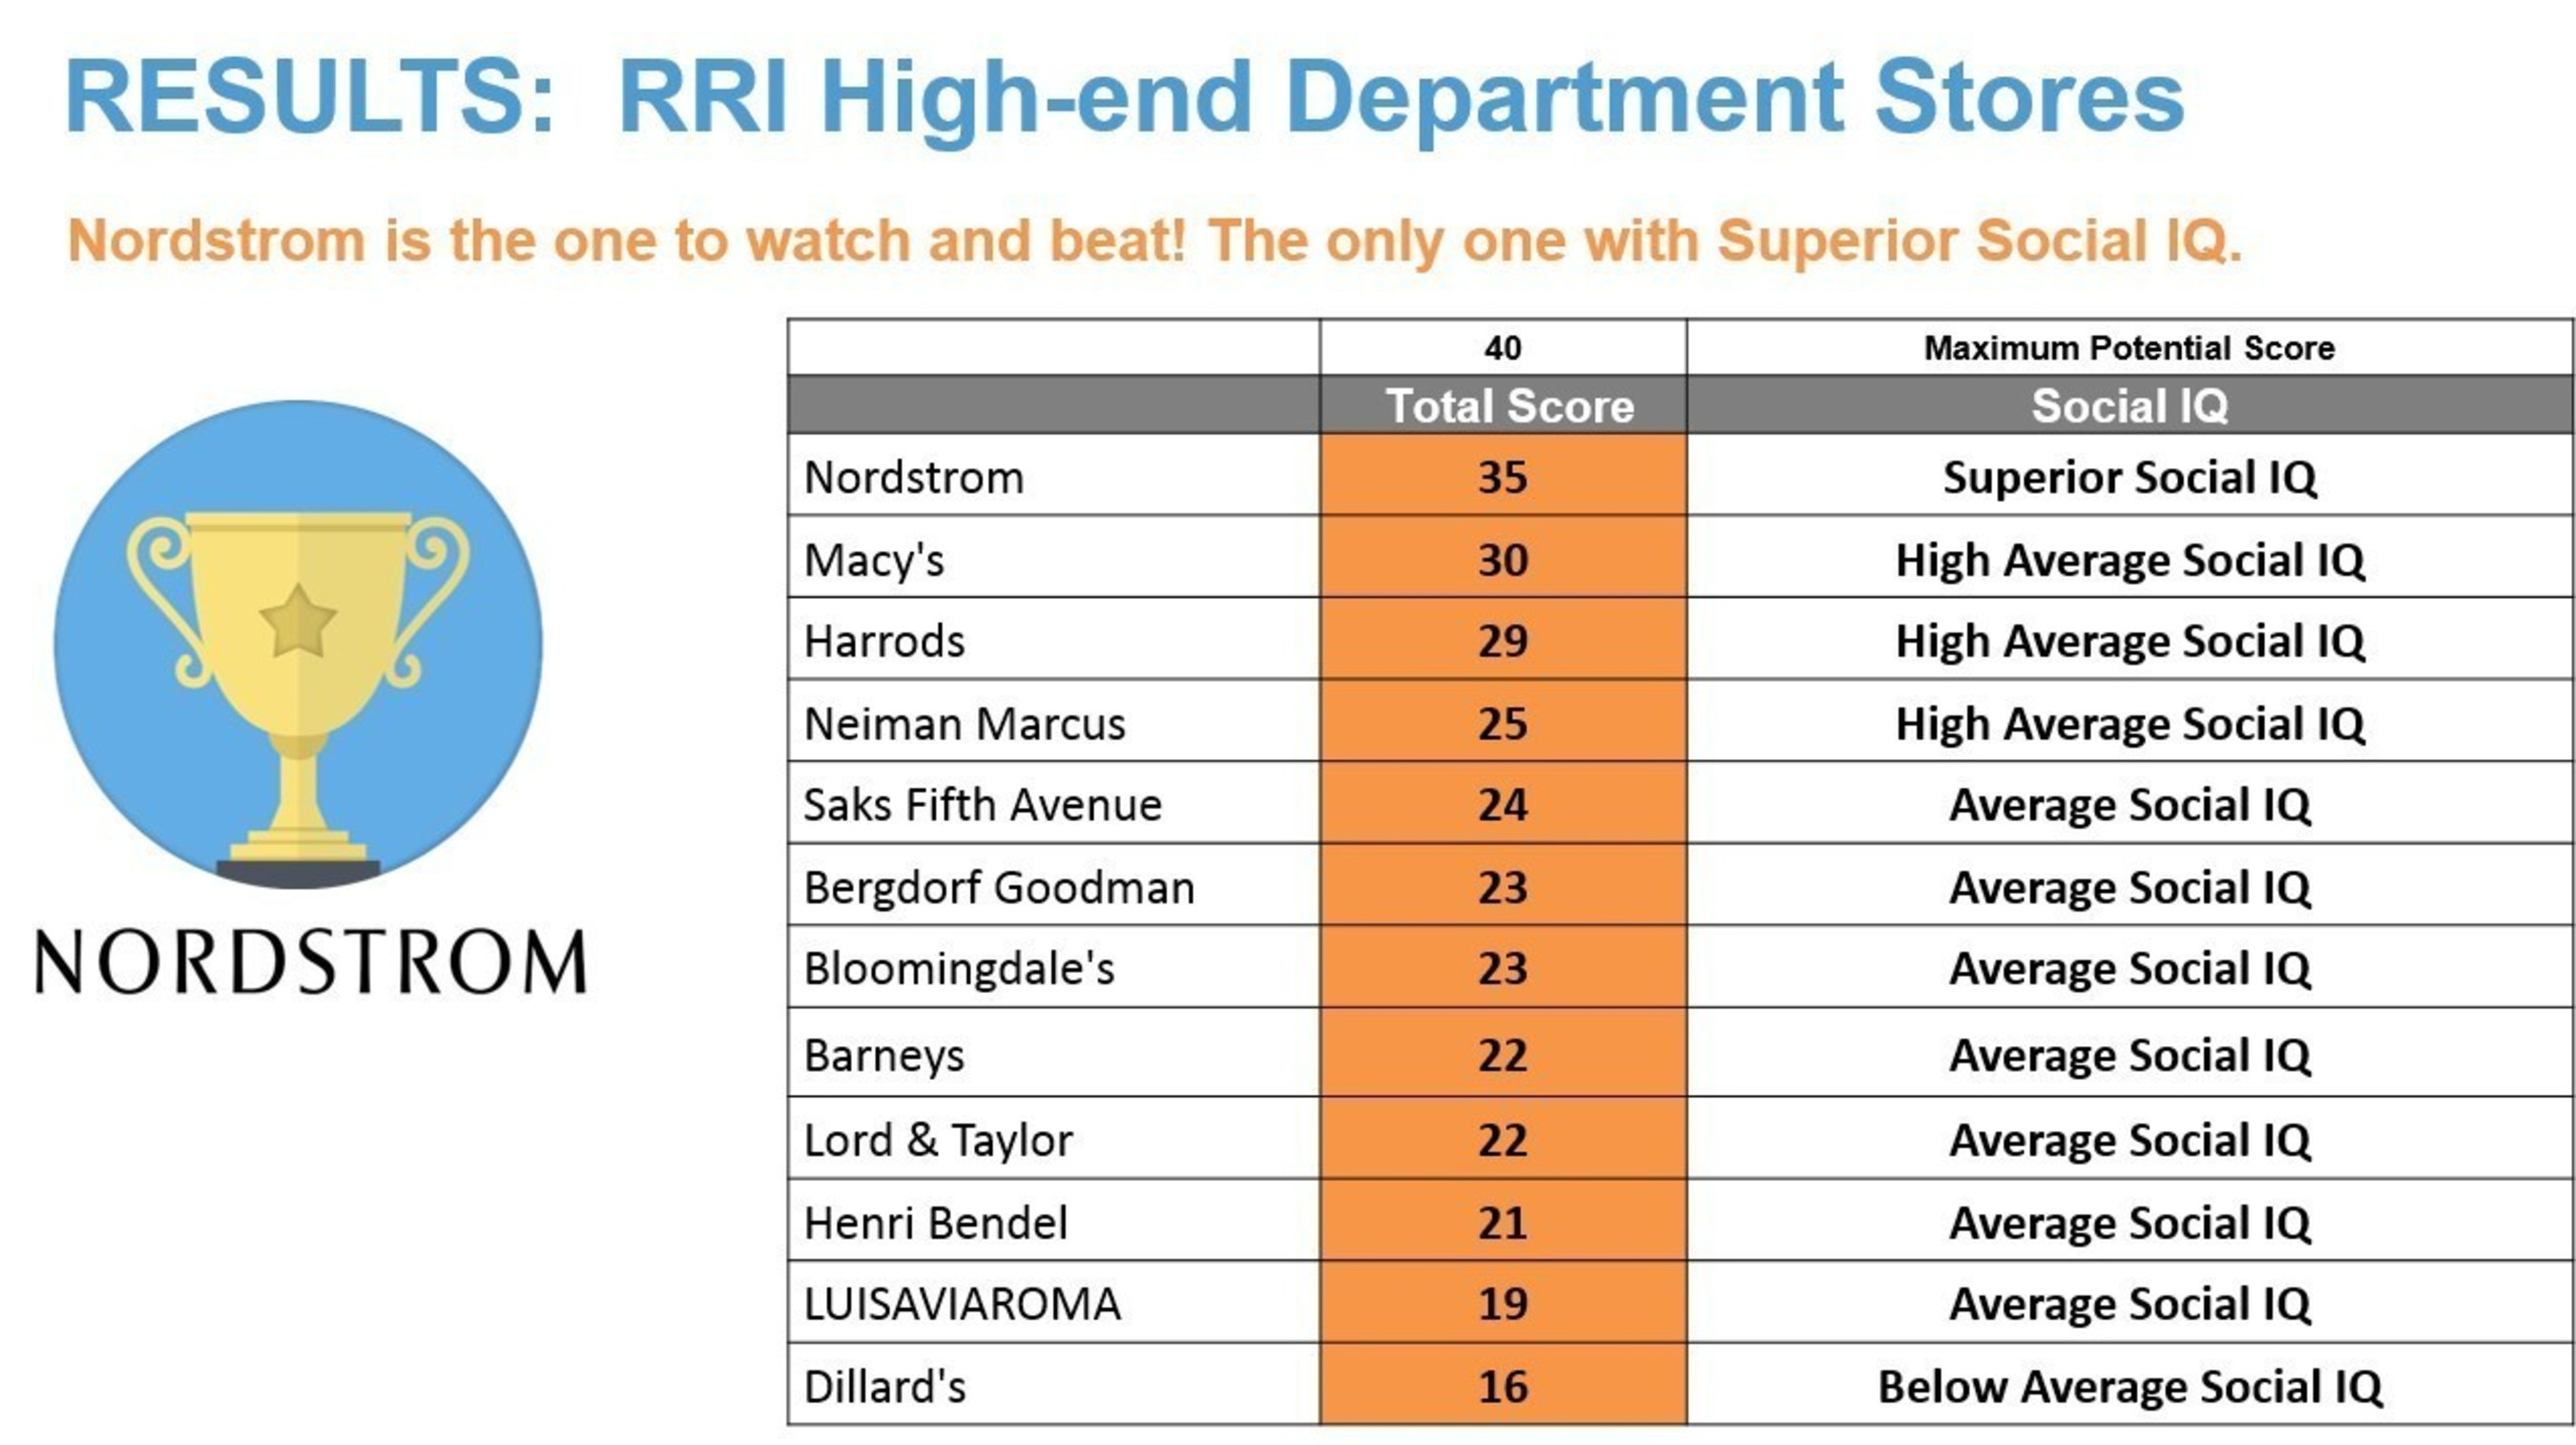 High Iq Scores : Nordstrom is only high end department store with a